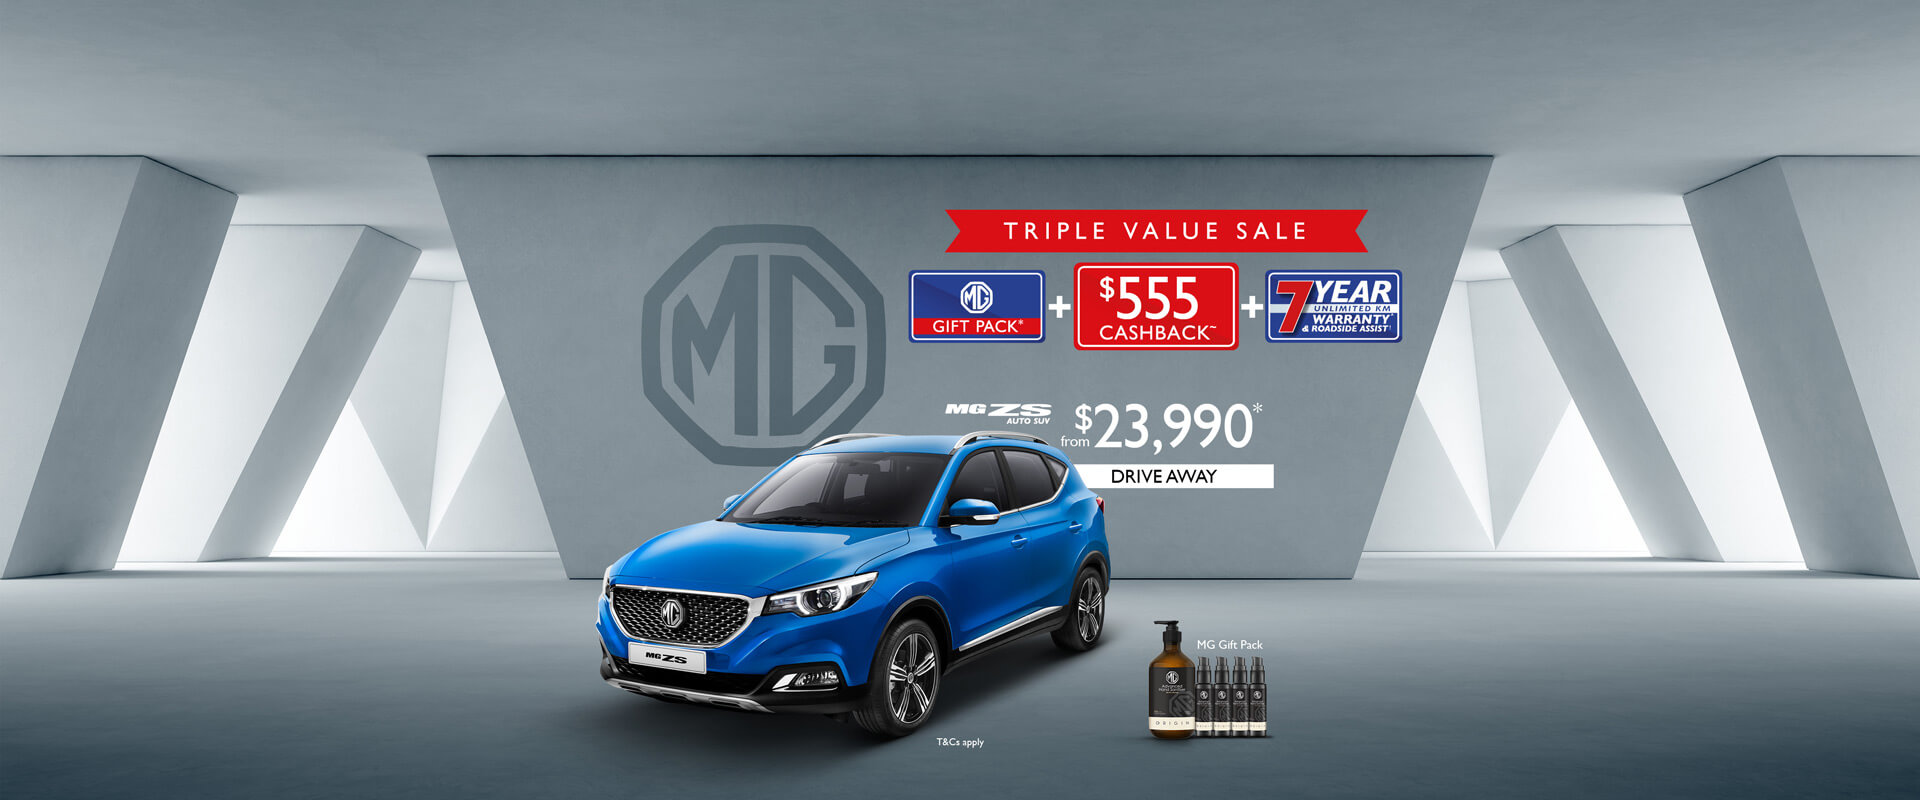 MG ZS Triple Value Sale